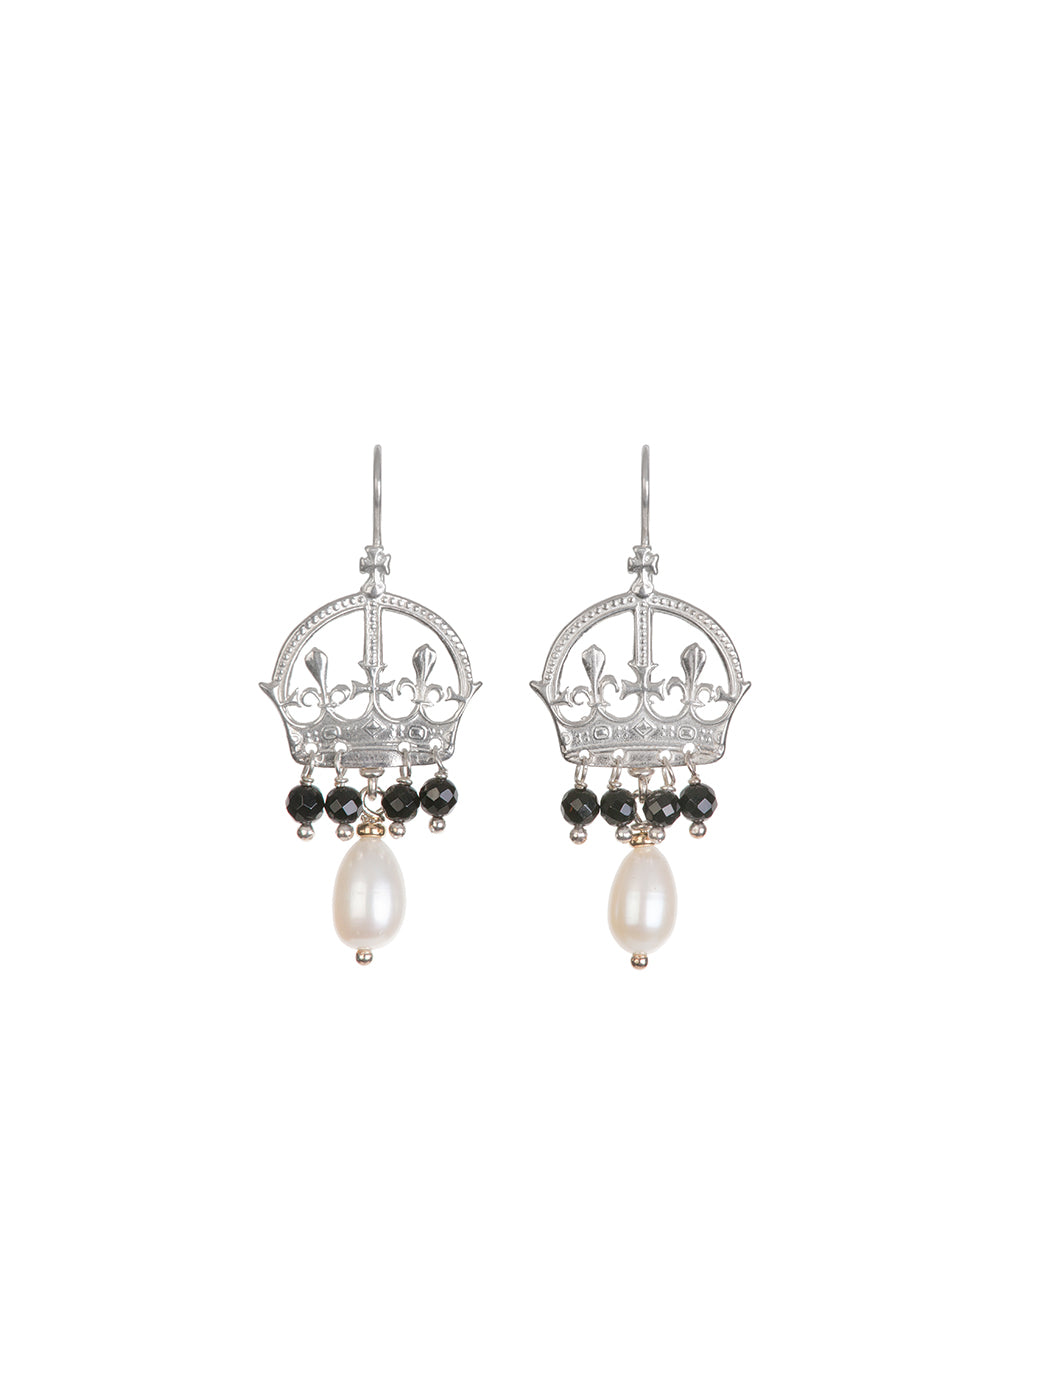 Fiorina Jewellery Coronet Earrings Black Onyx